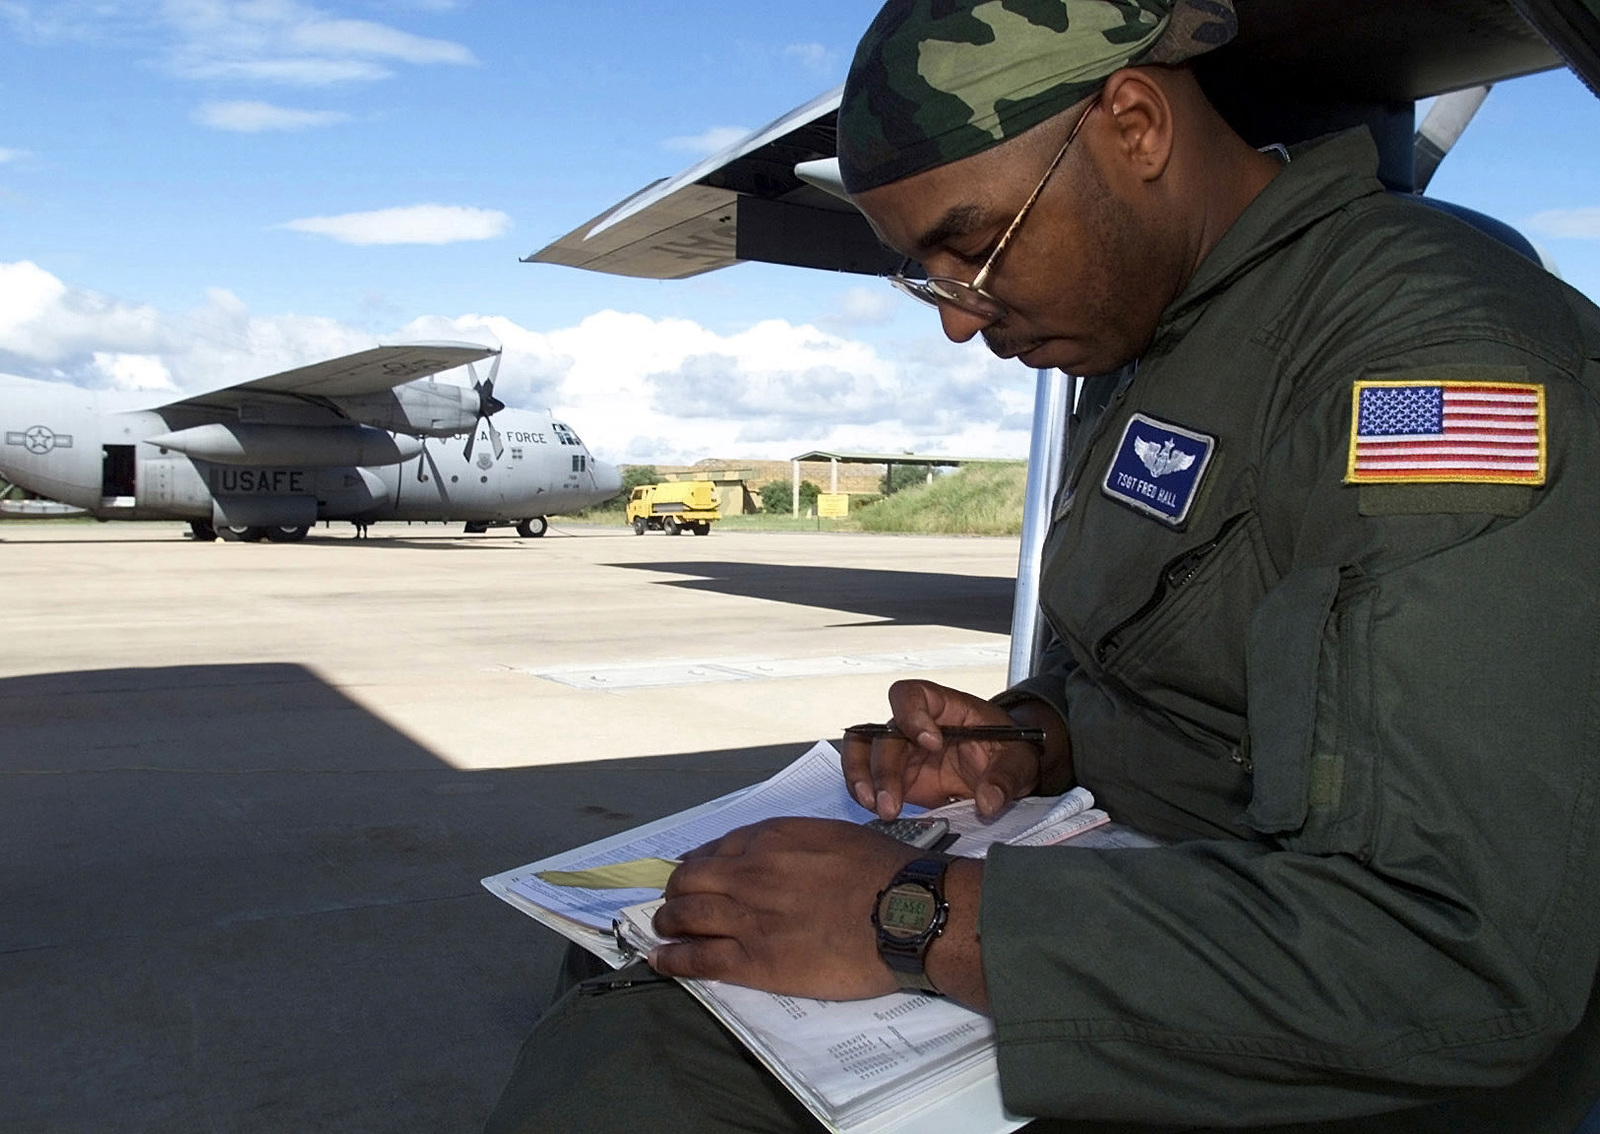 Left side profile medium close-up shot as USAF Technical Sergeant Fred Hall, a C-130 loadmaster from the 37th Airlift Squadron, 86th Airlift Wing, Ramstein Air Base, Germany, checks aircraft weight and balance prior to departing Hoedspruit Air Force Base, South Africa, to deliver U.S. personnel (cargo and personnel not shown) and supplies to Beira, Mozambique, during Operation Atlas Response. The U.S. aircraft are deployed to South Africa to provide humanitarian relief to the people (not shown) forced from their homes in the flooded regions of Mozambique. A right side profile of a USAF C-130 Hercules cargo aircraft is seen in the background